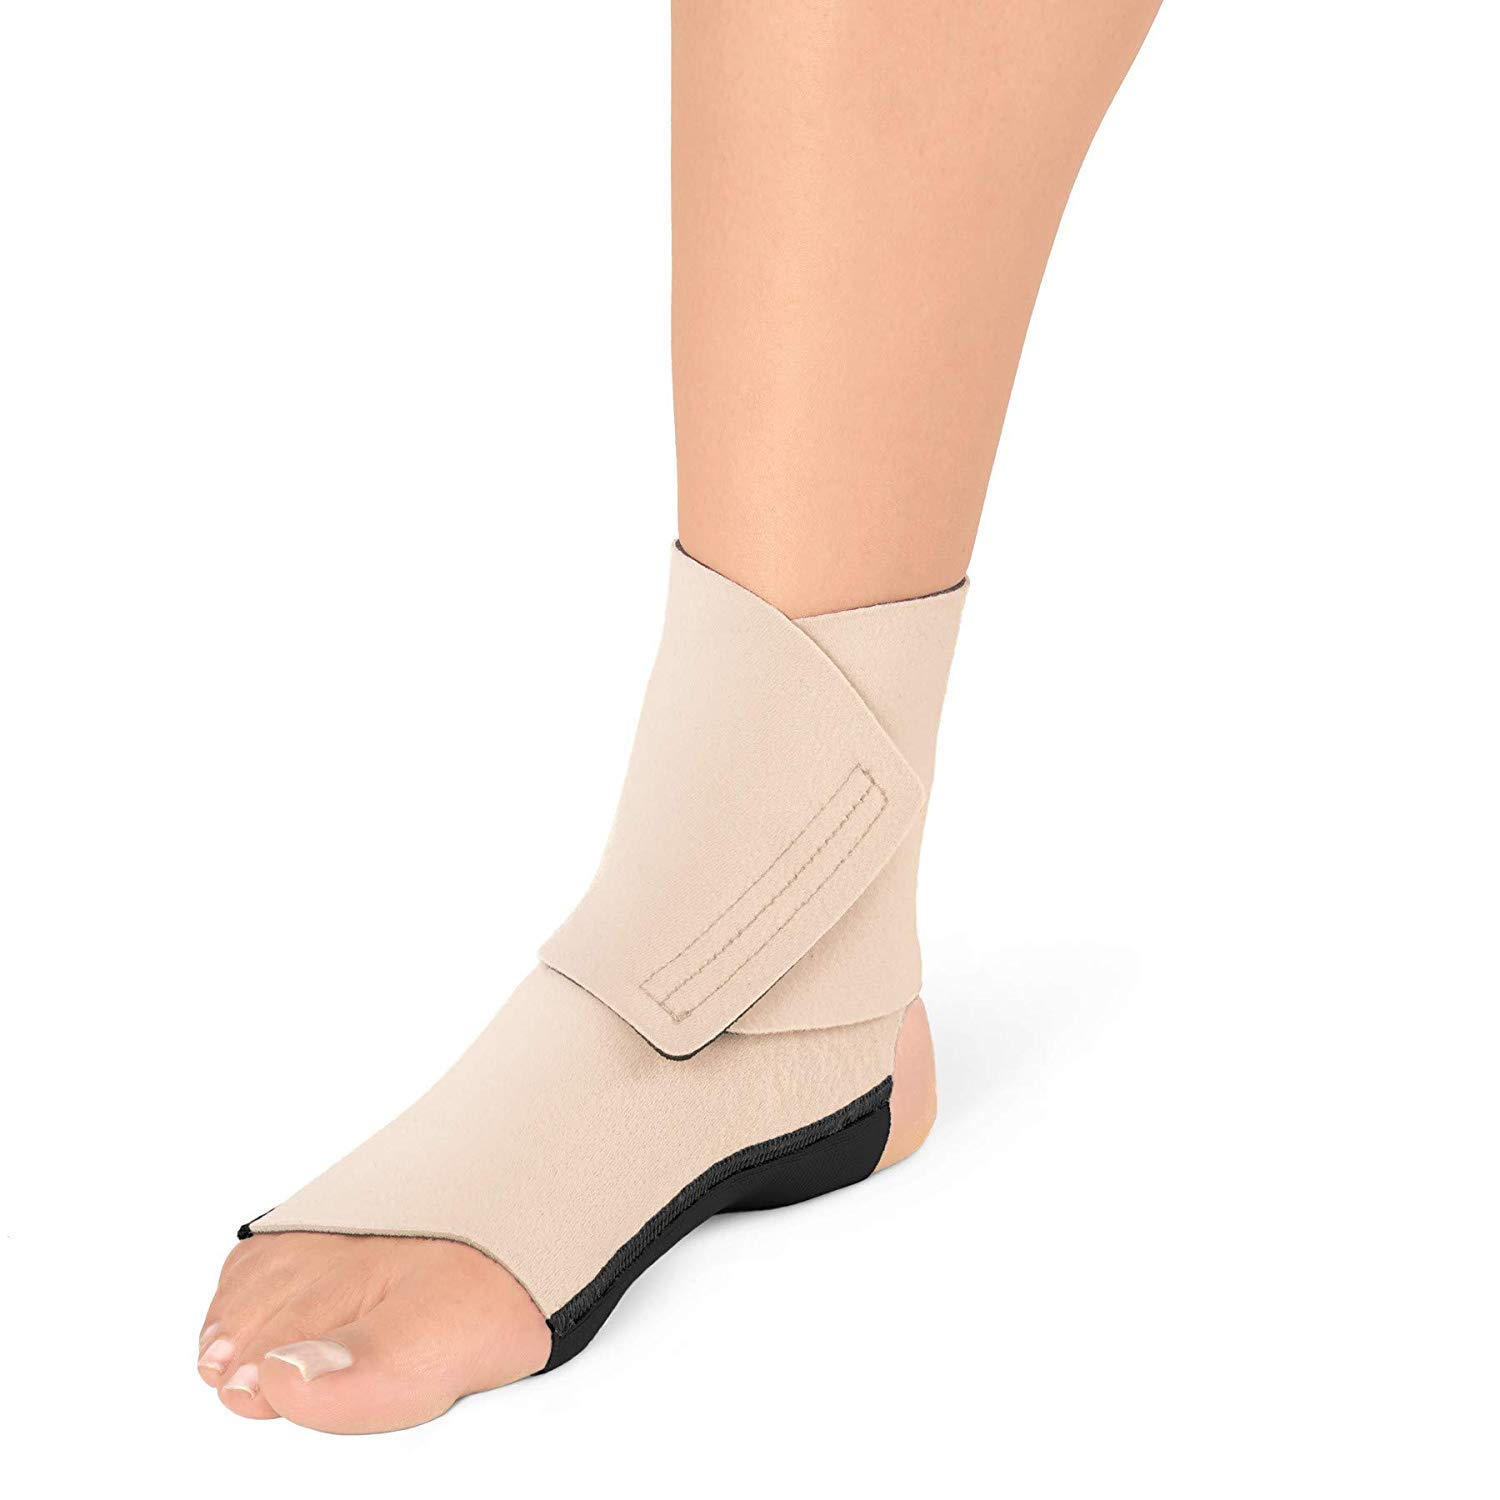 ReadyWrap, Beige Foot SL Sleeve/Wrap, Regular Length (Small-Right) by LOHMANN